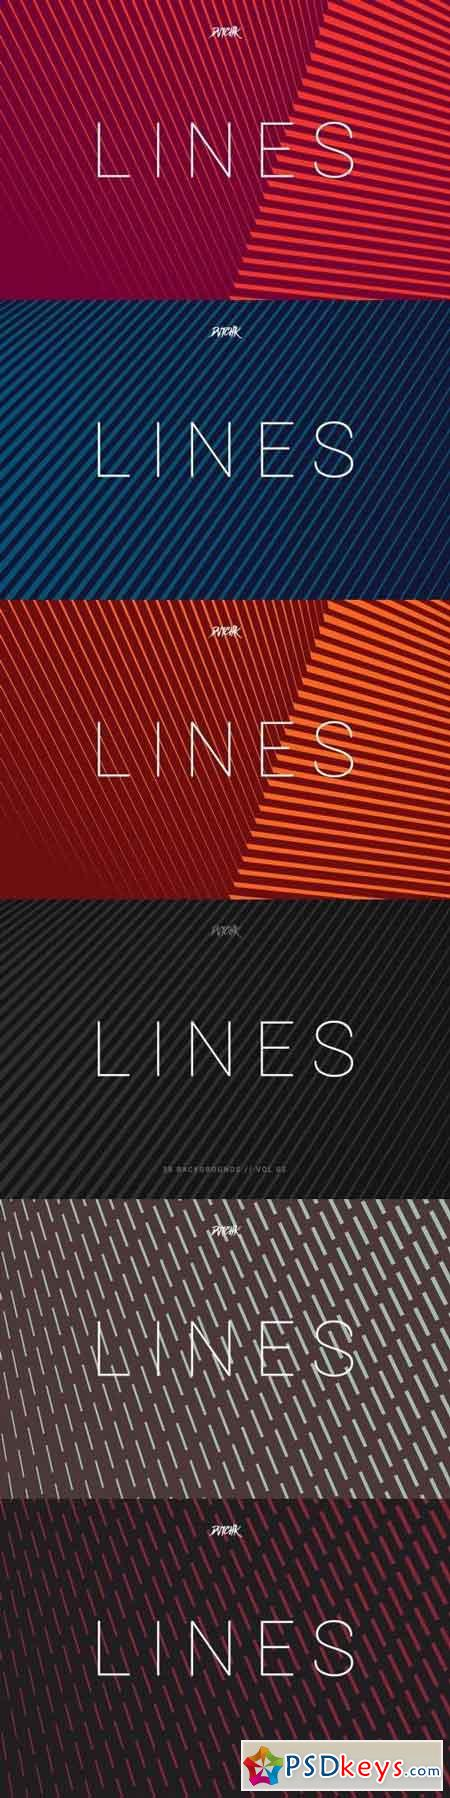 Lines Abstract Stripes Backgrounds Vol. 02